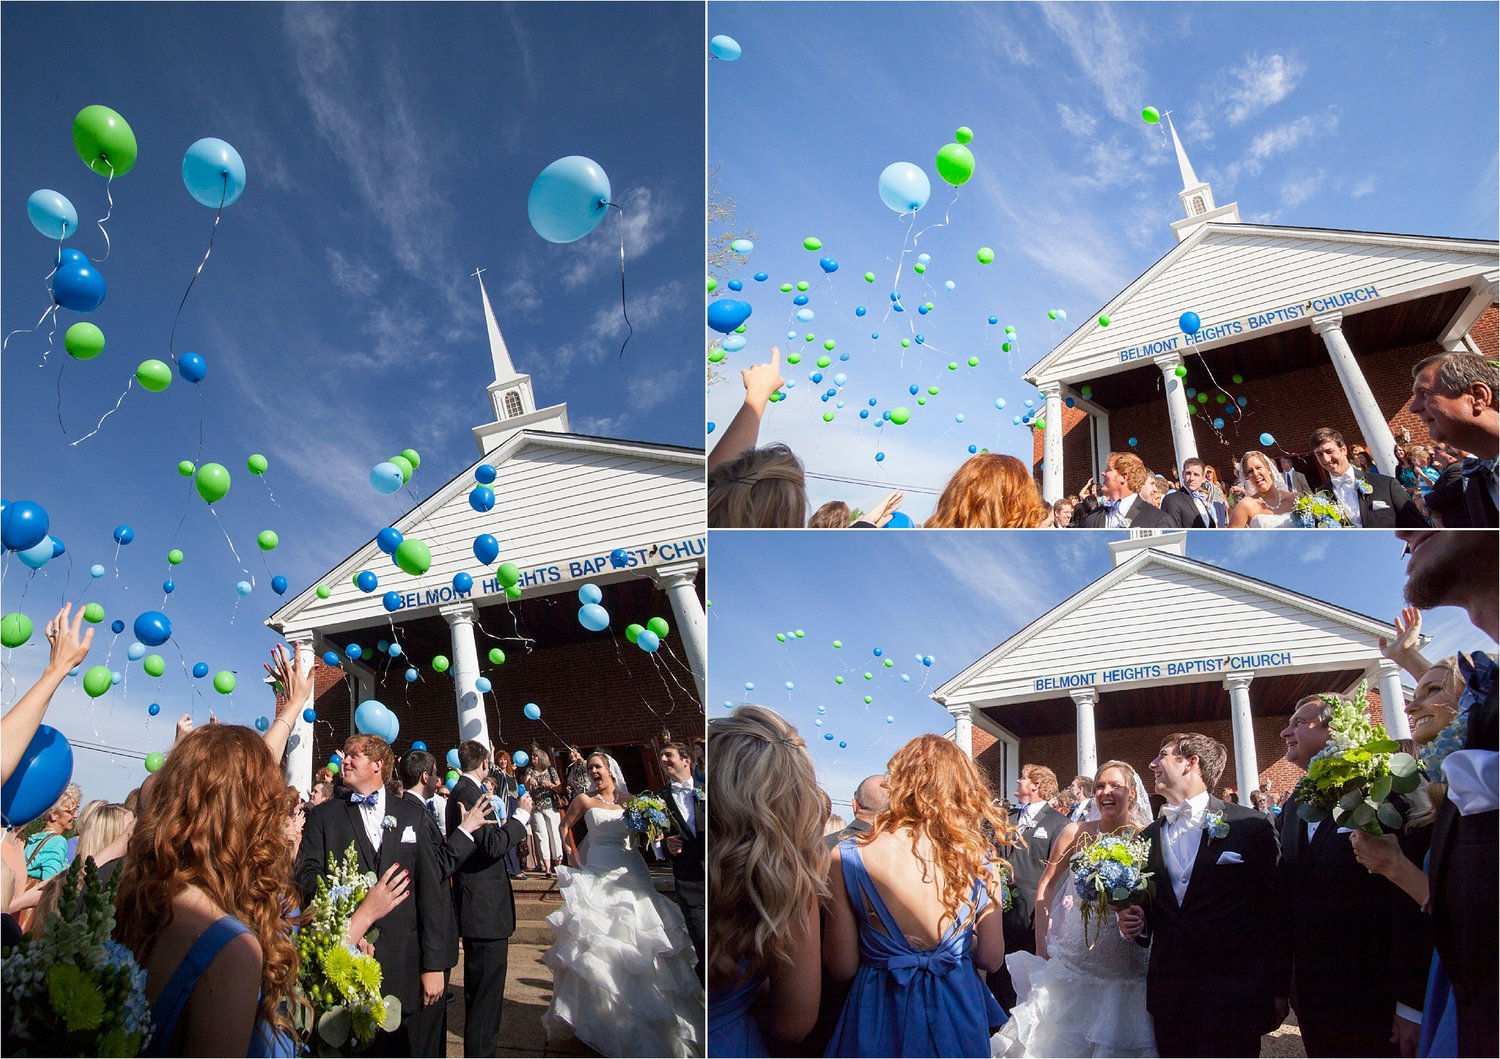 As the couple exited the church, an impressive display of balloons were released into the air.